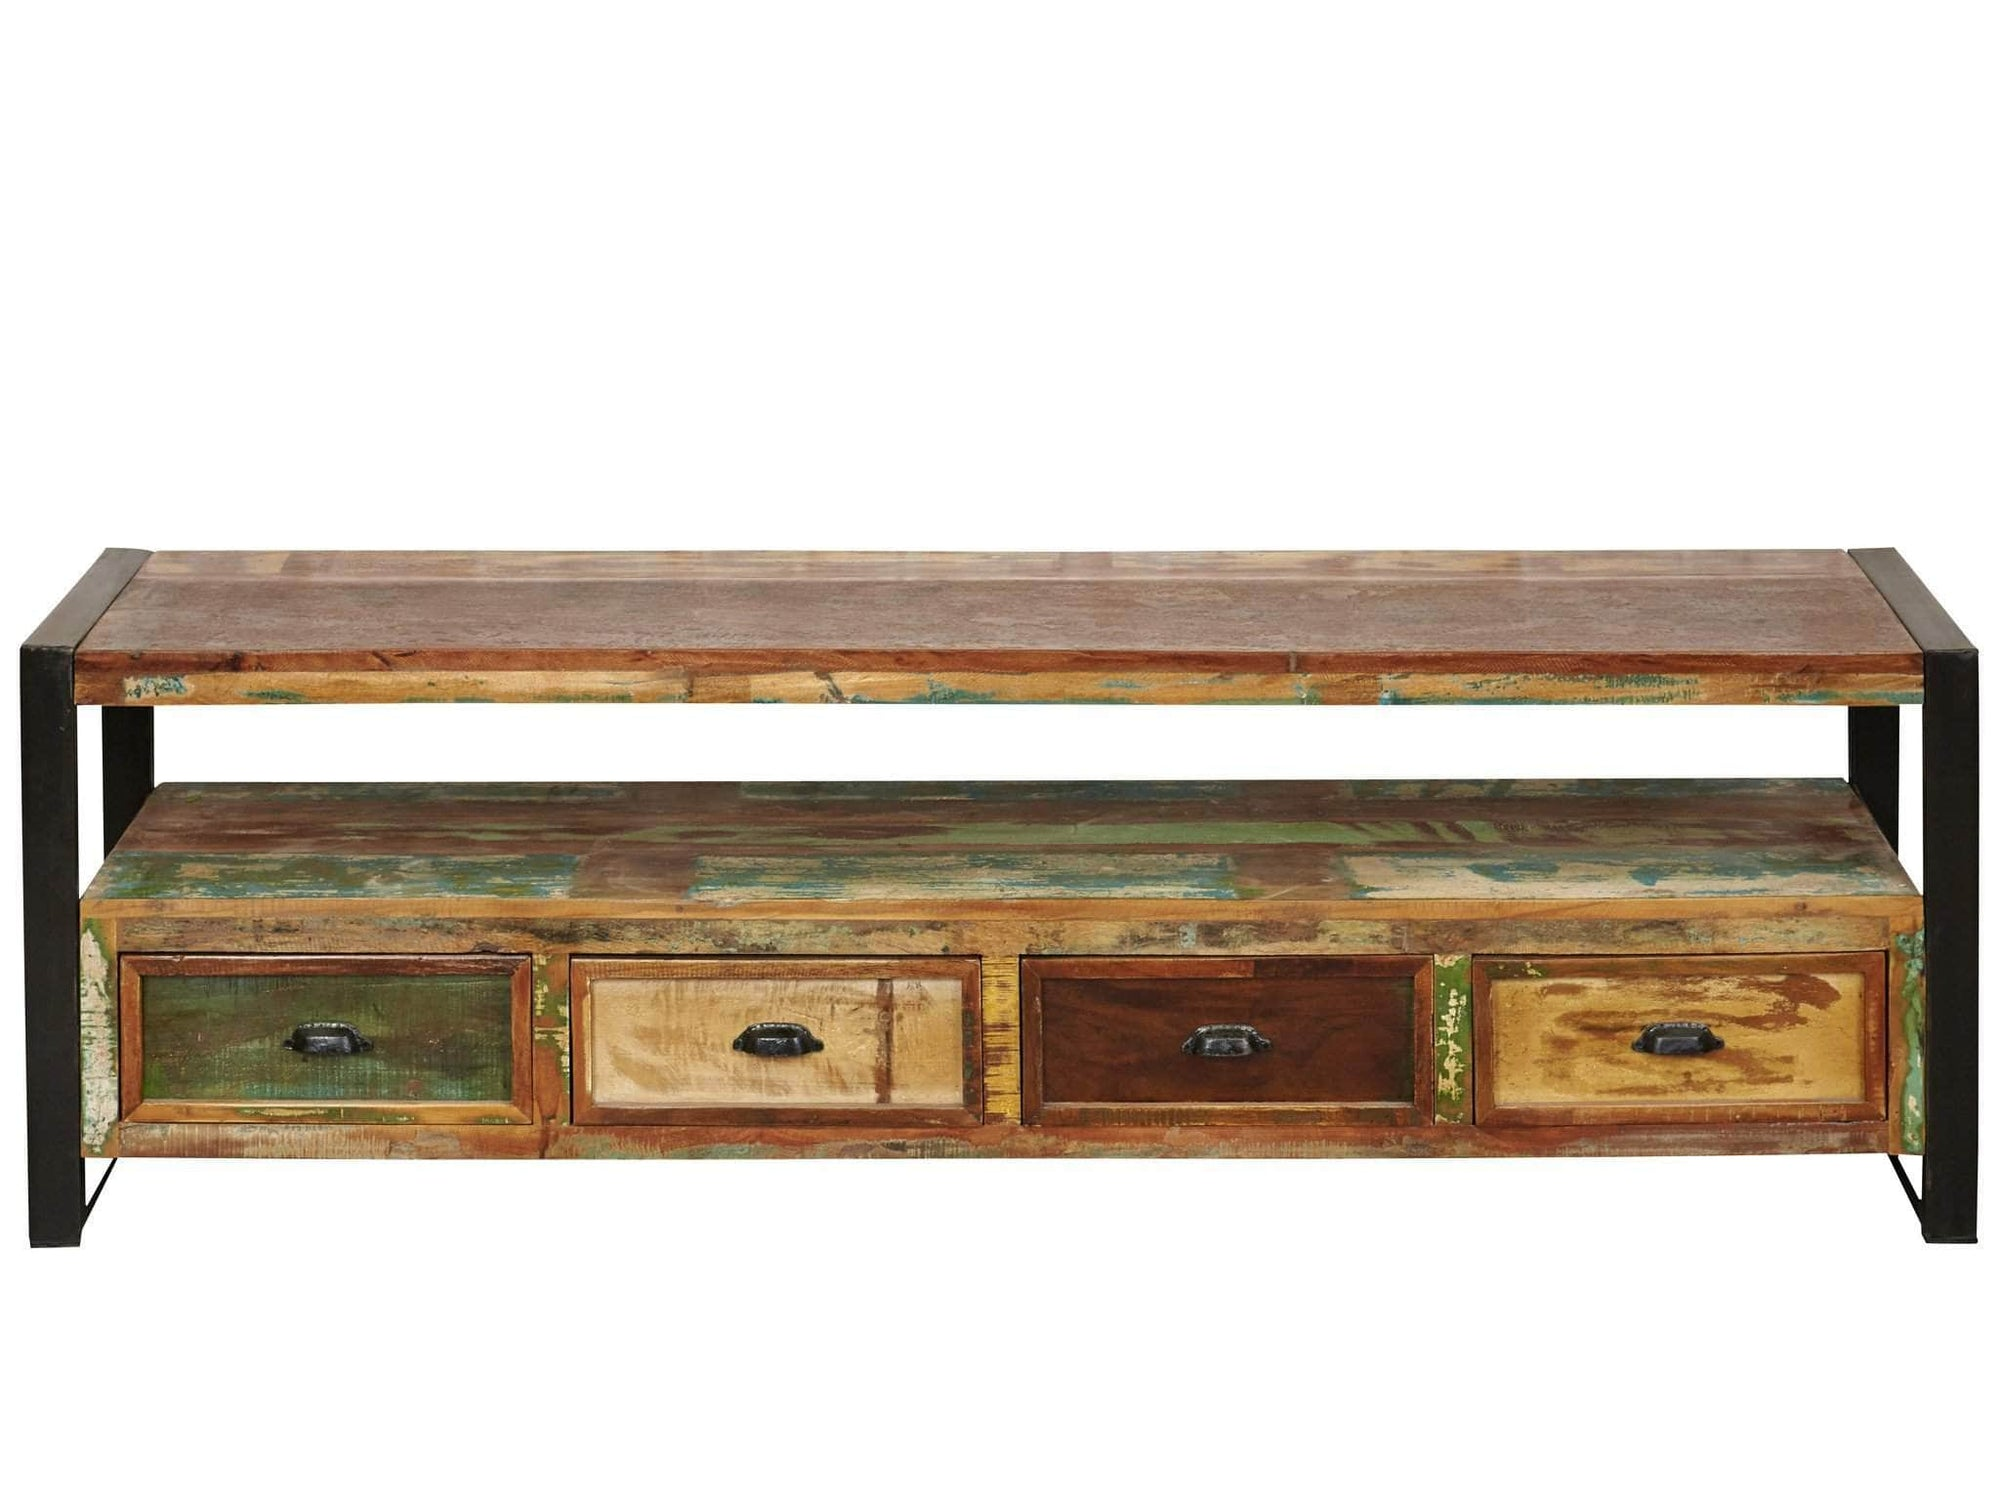 Large reclaimed wood TV stand with four drawers and under shelf for media boxes